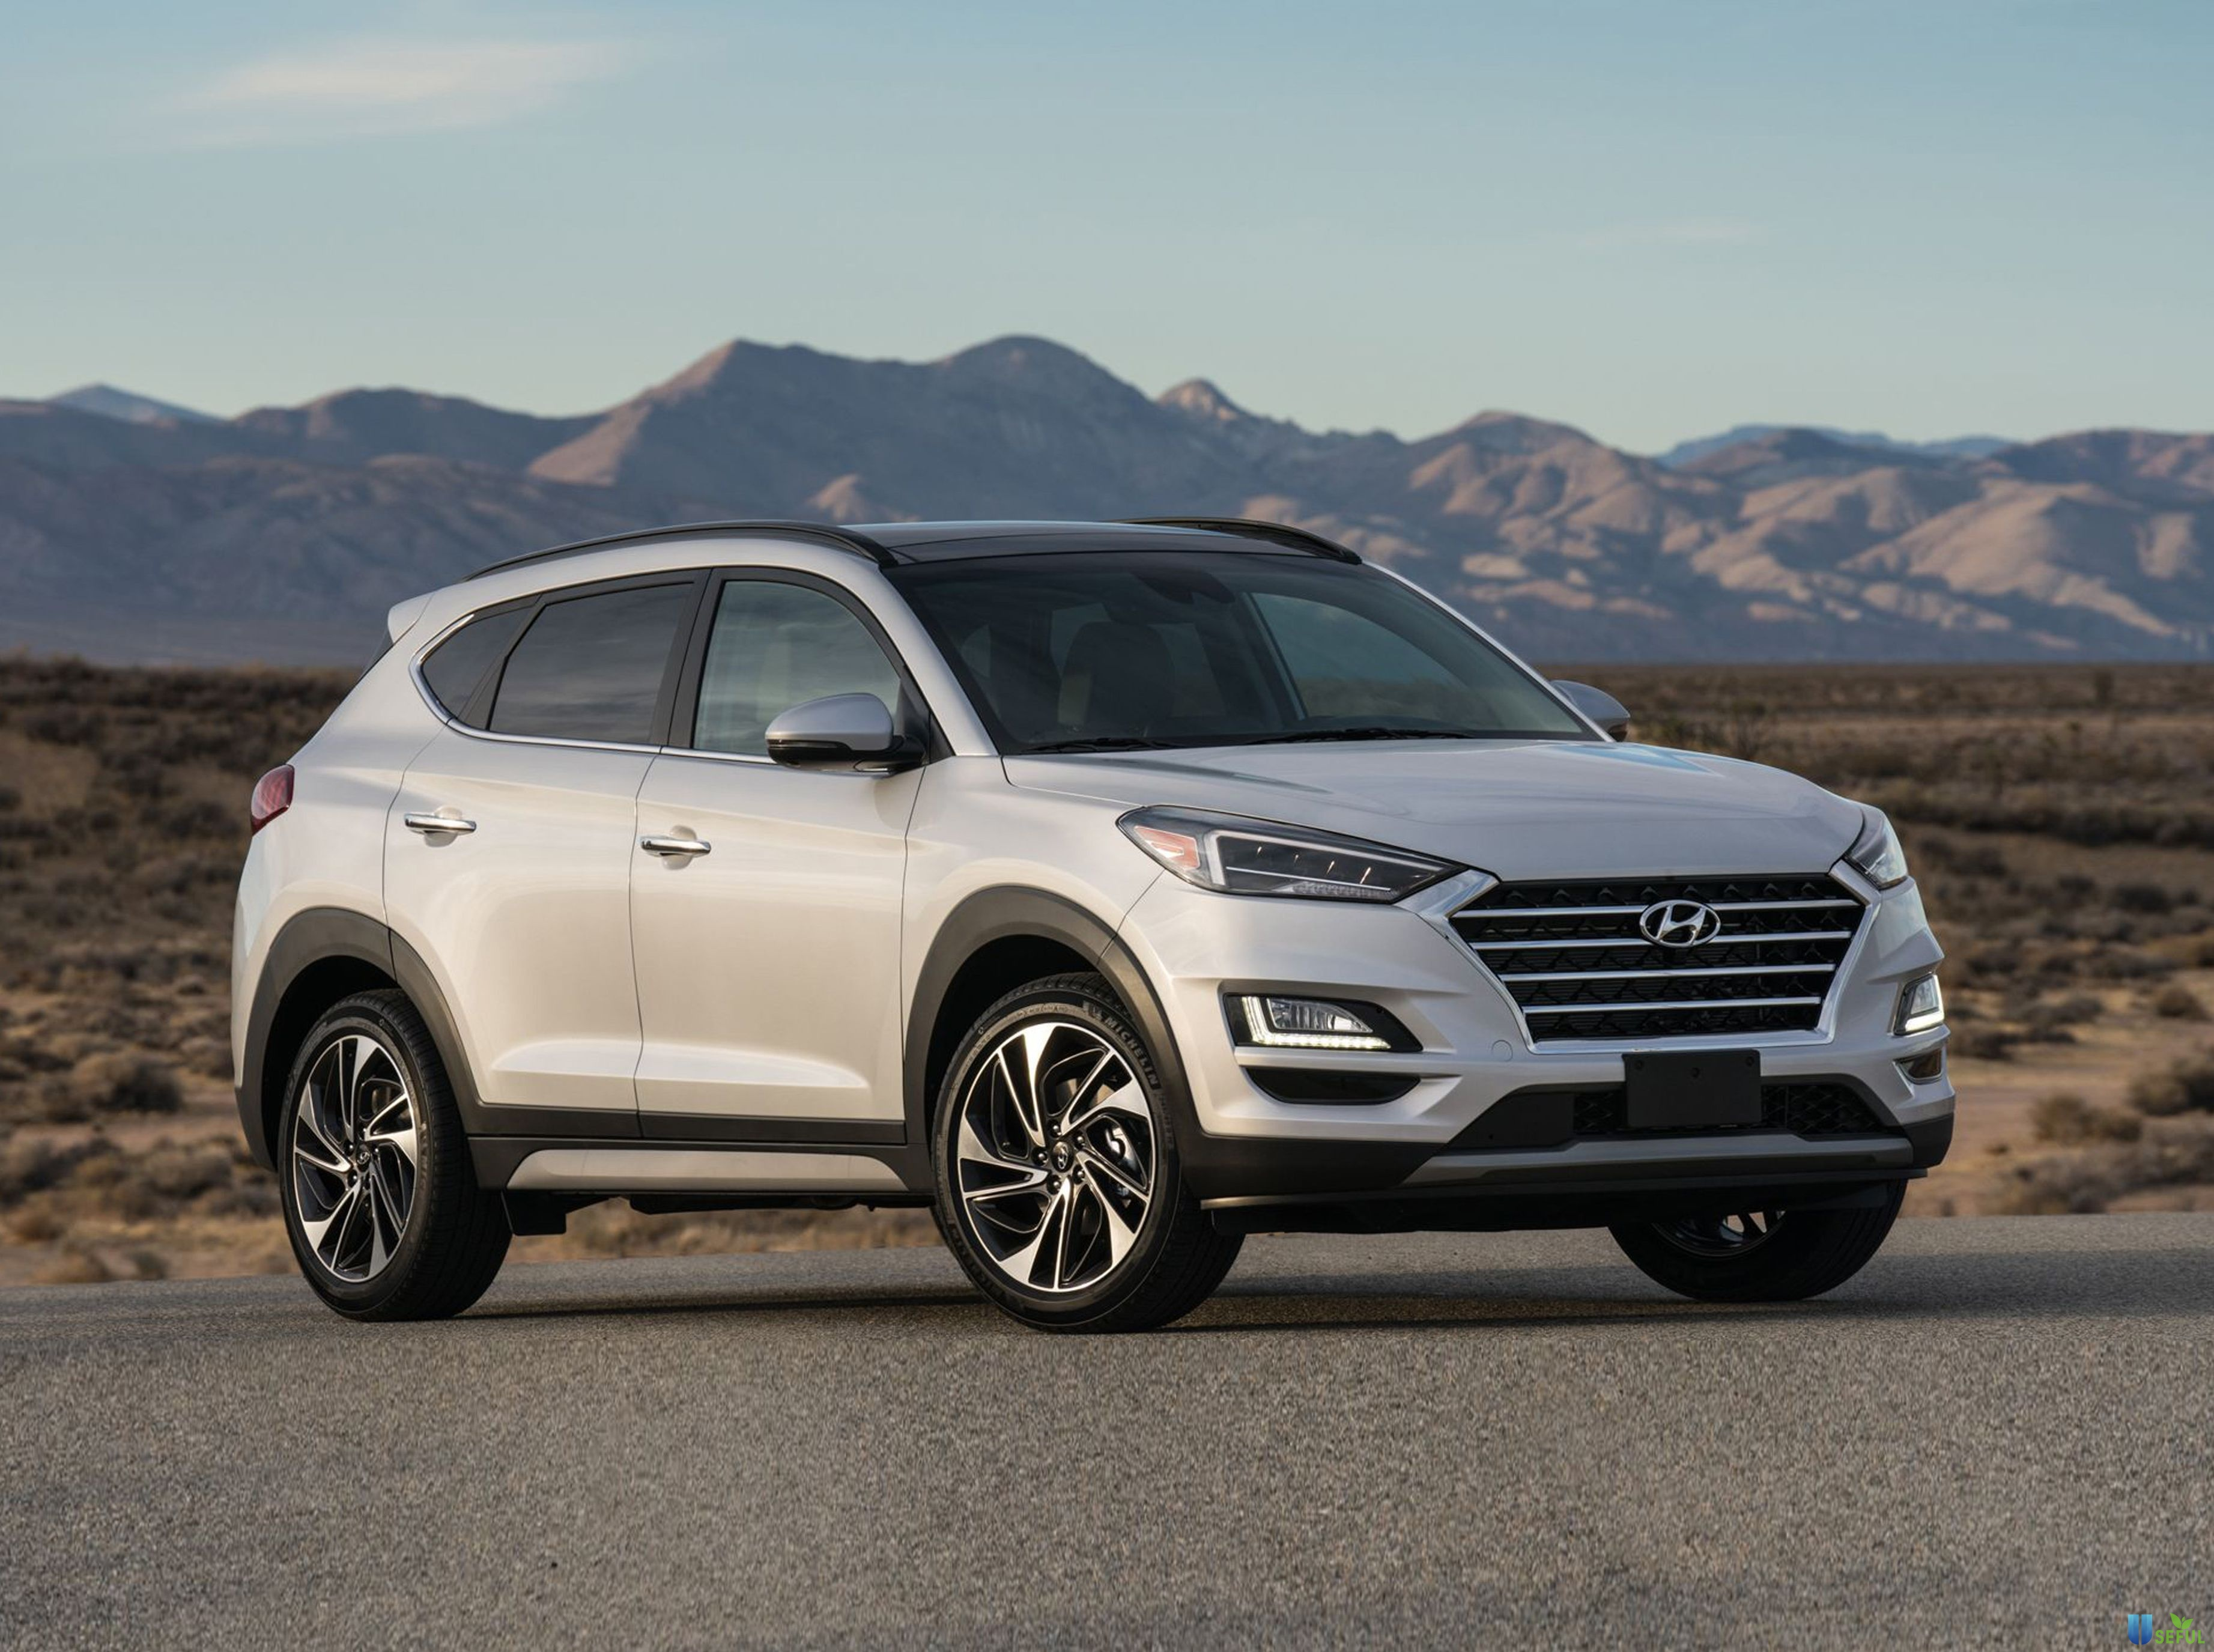 2020 Hyundai Tucson Review, Pricing, and Specs